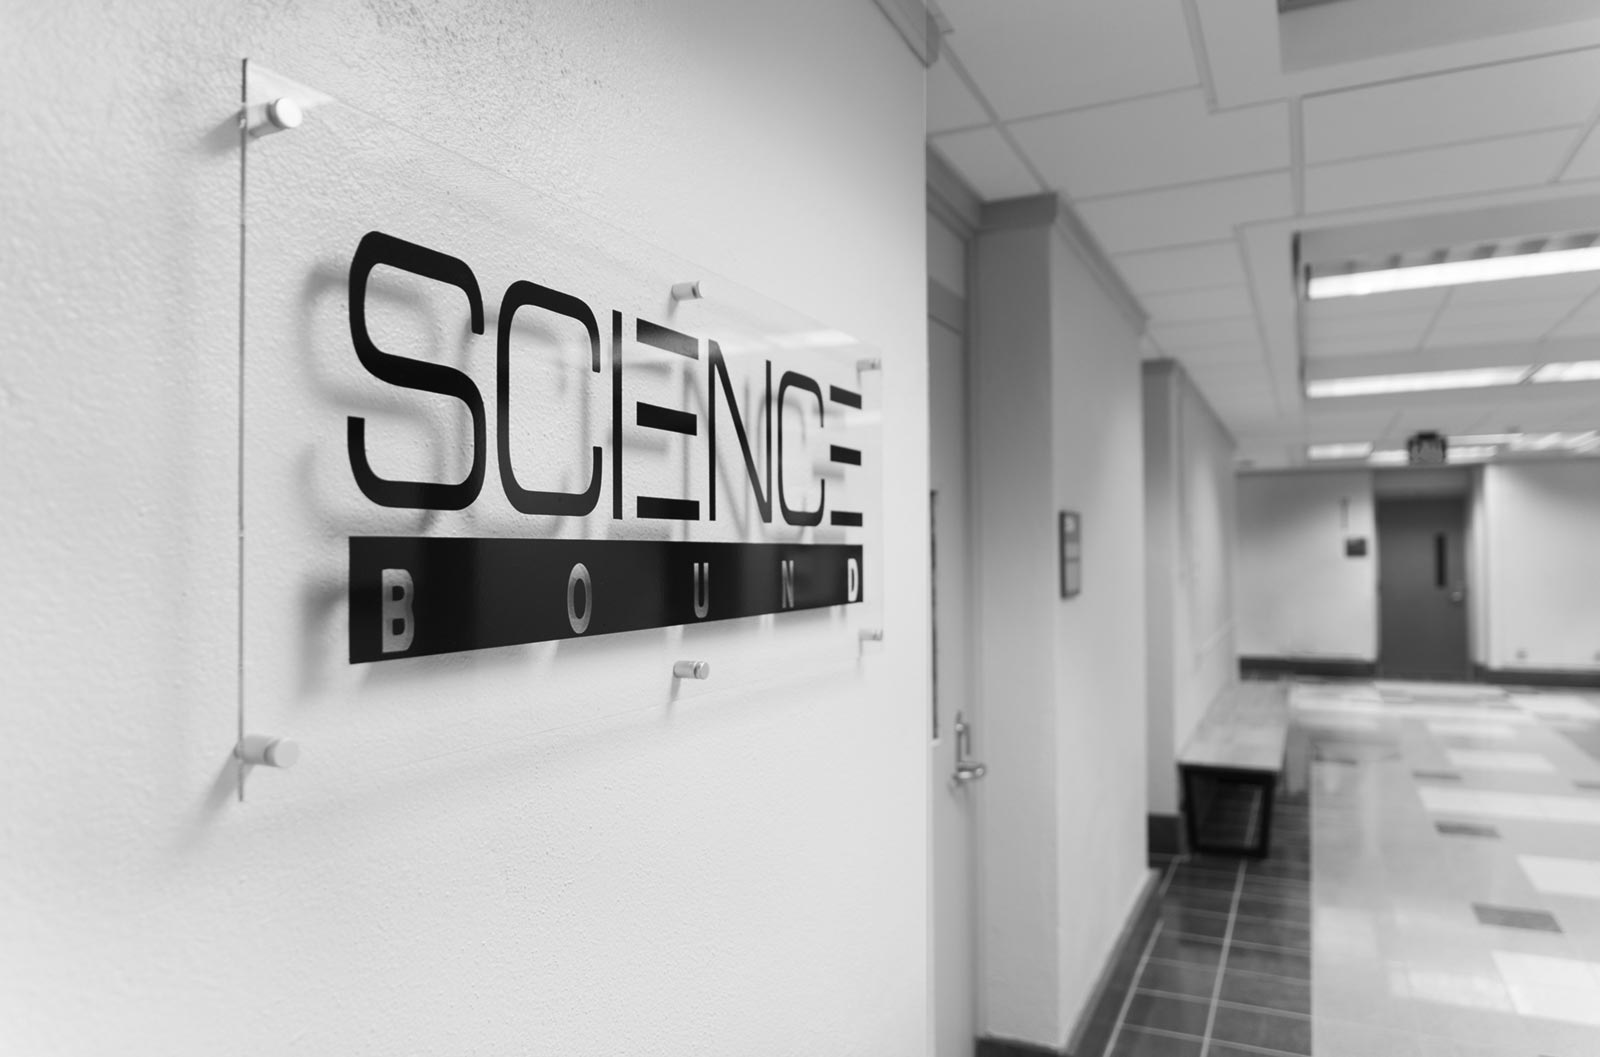 background image of Science Bound signage